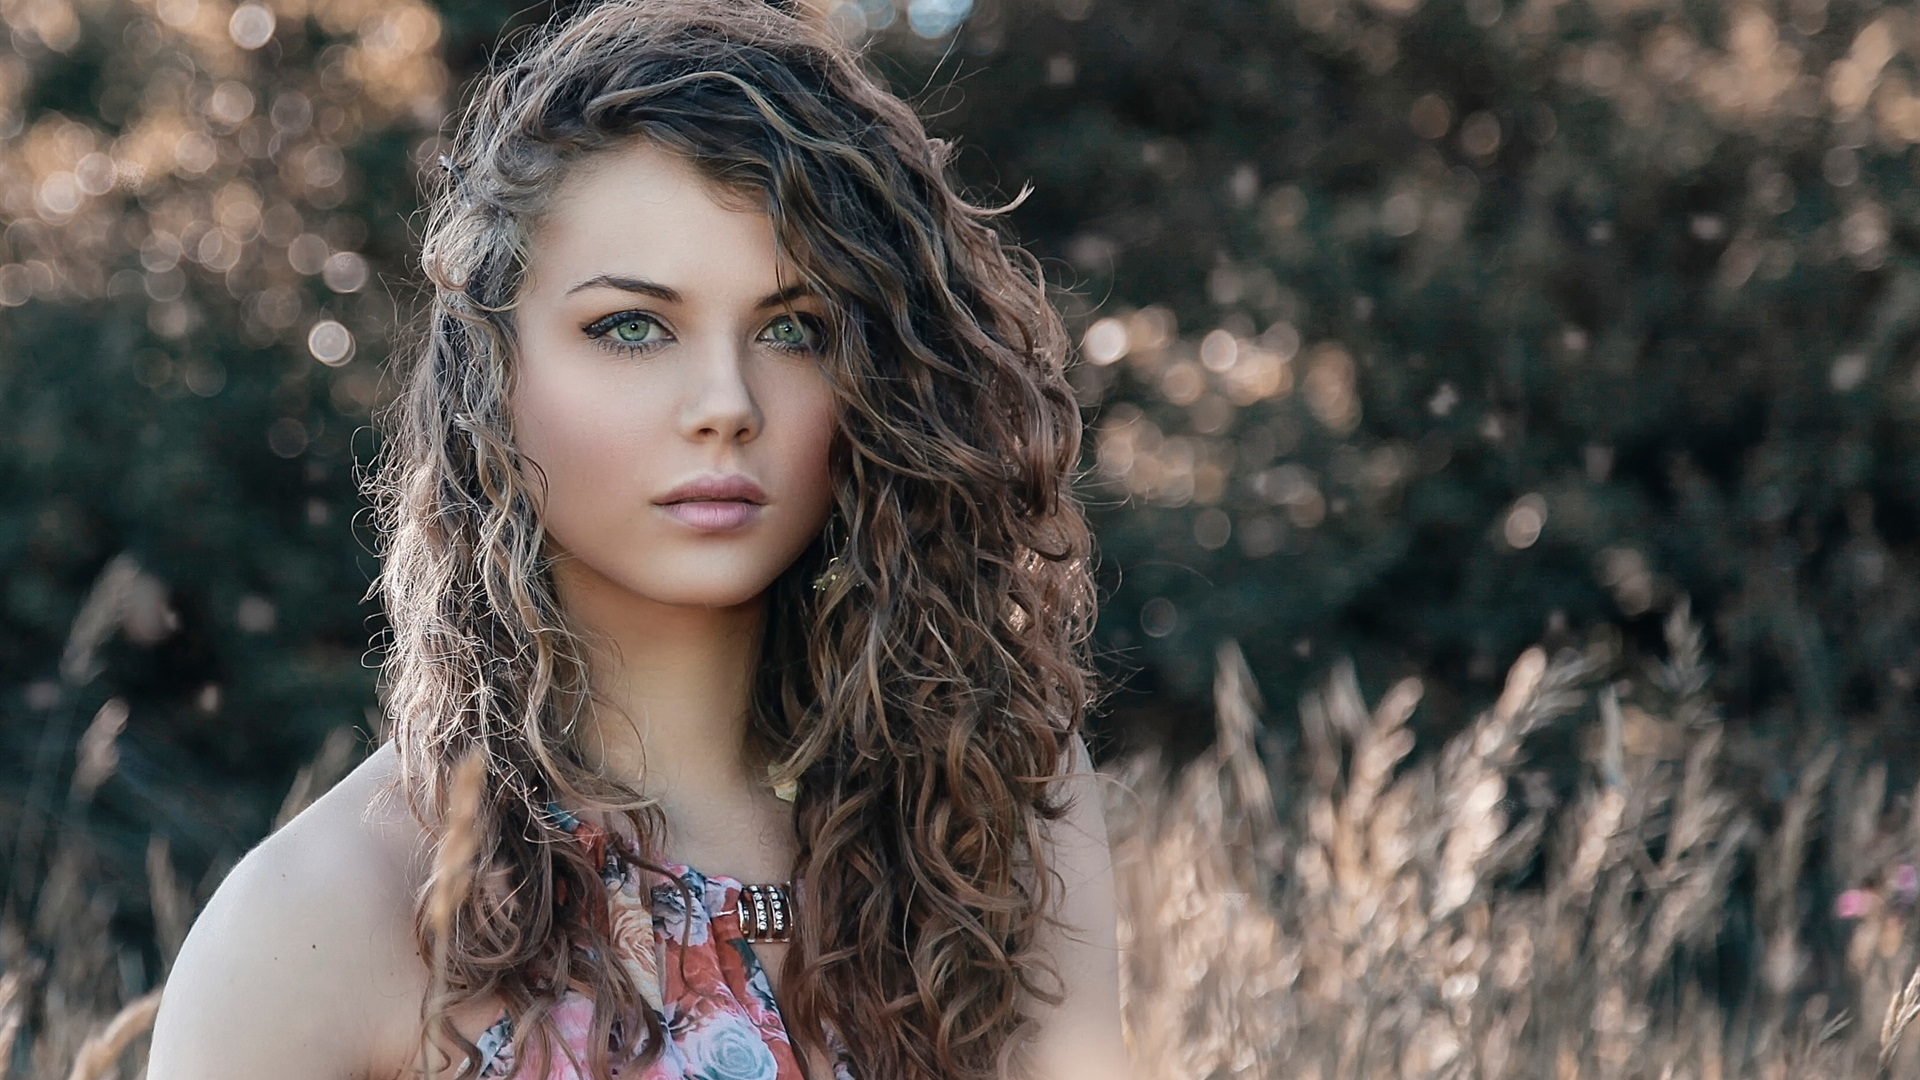 Wallpaper Curly Hair Fashion Girl 1920x1200 Hd Picture Image